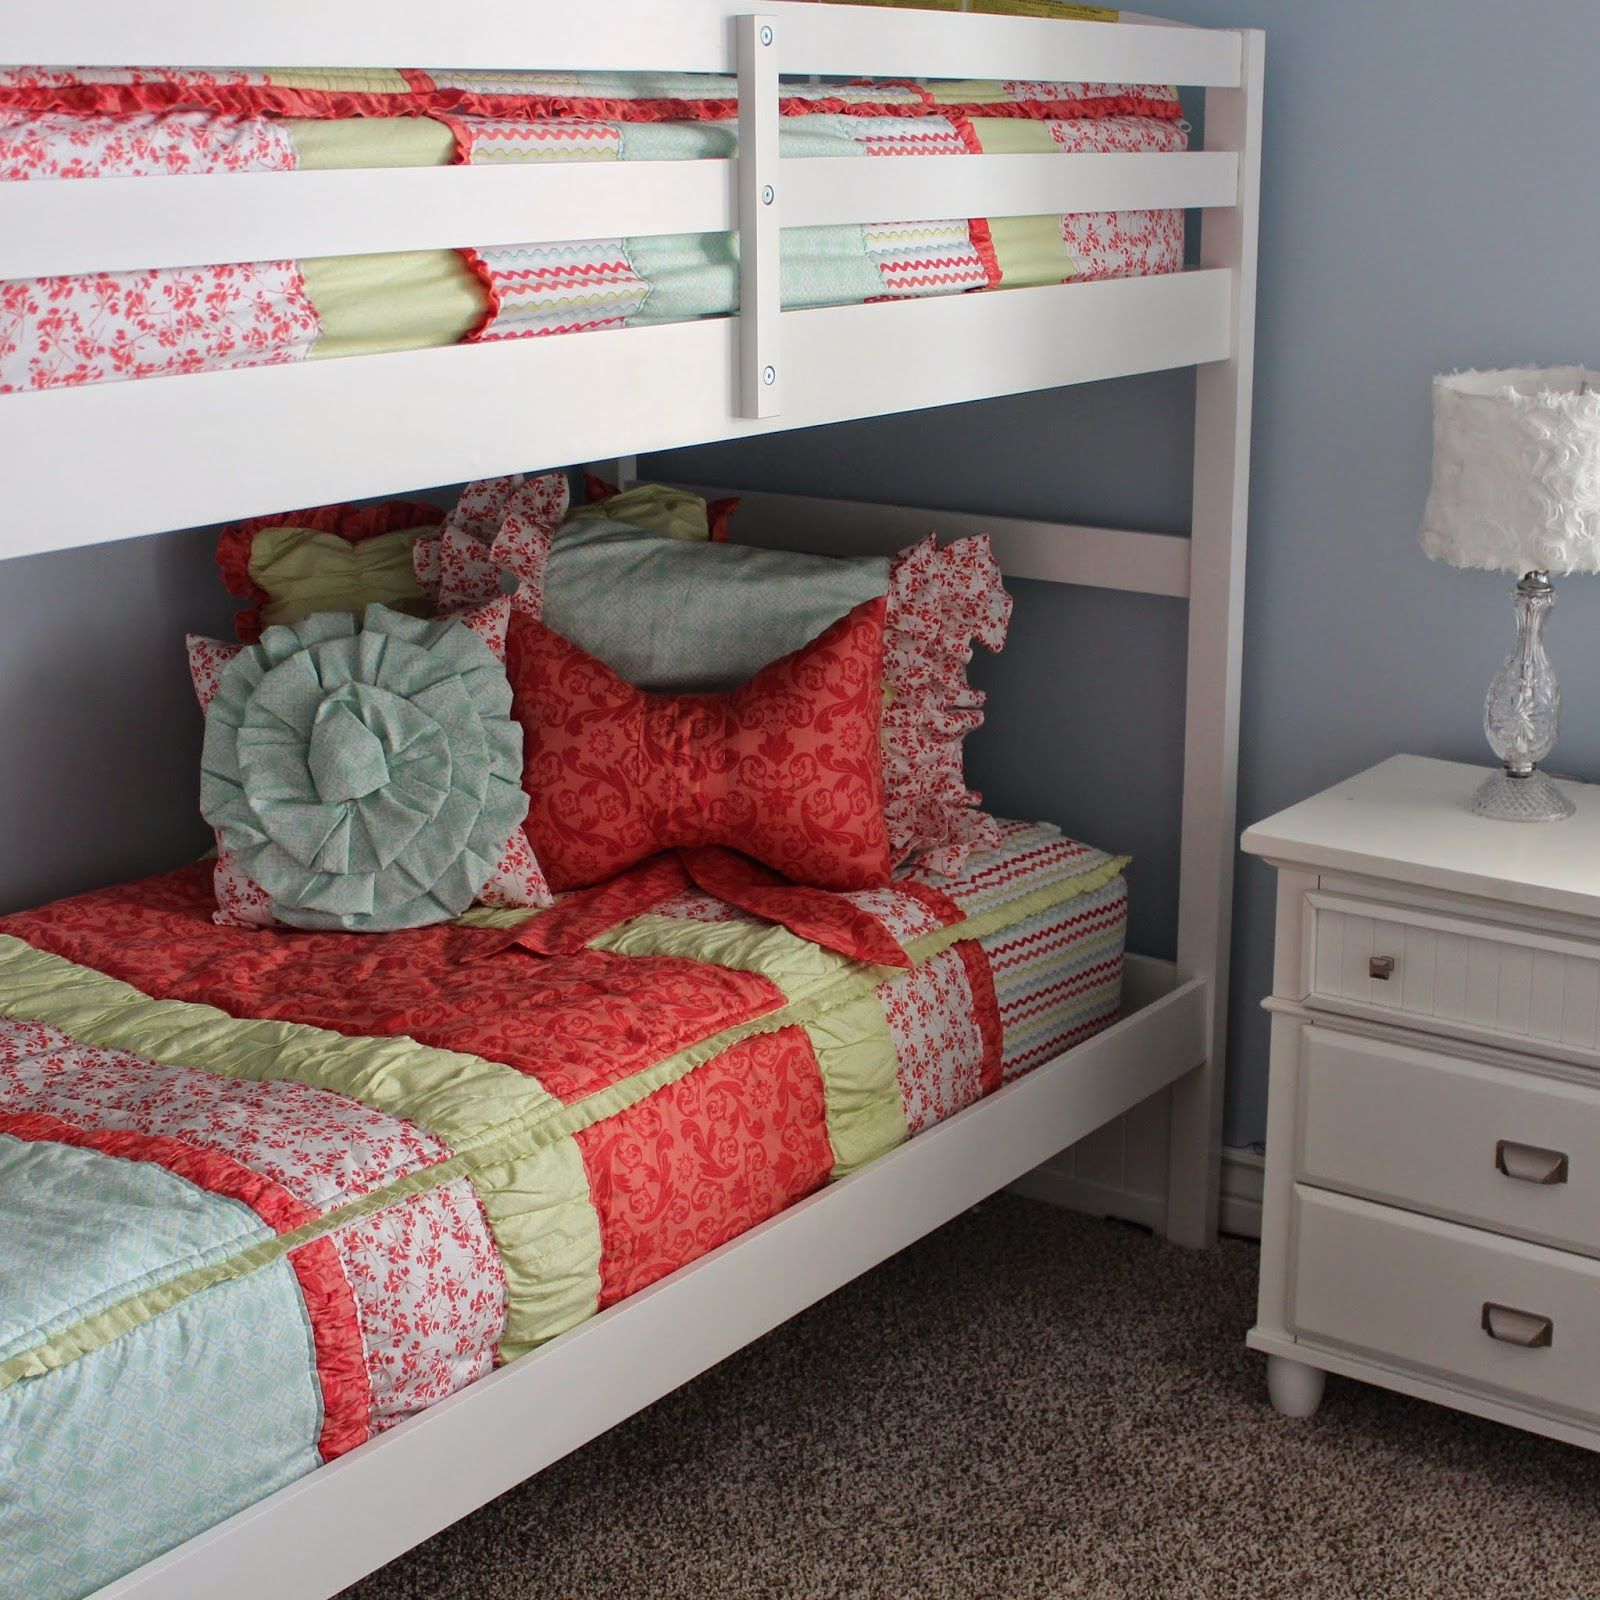 99 Bunk Bed Duvet Covers Interior Paint Colors Bedroom Check More